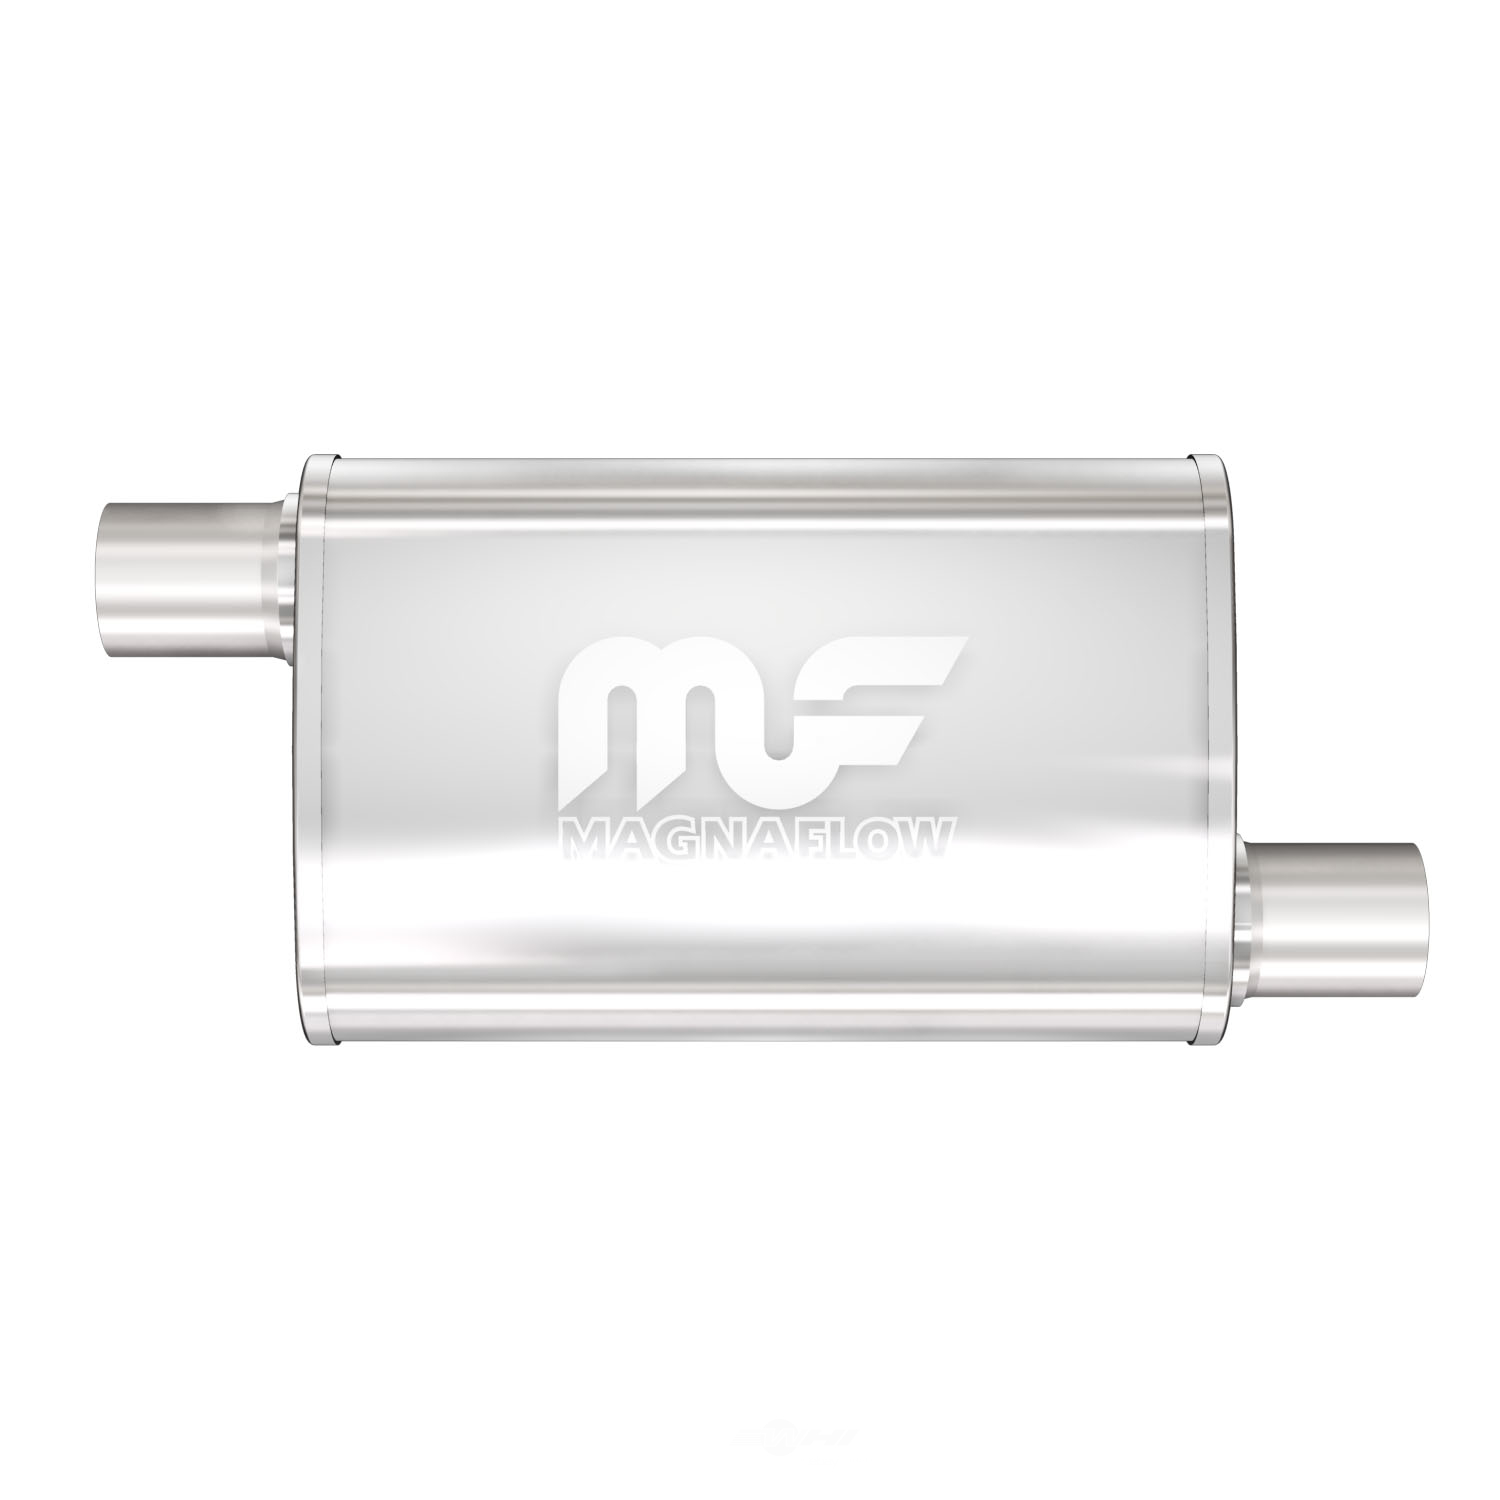 MAGNAFLOW PERF. EXHAUST - Satin Finish Oval Exhaust Muffler - MGF 11236